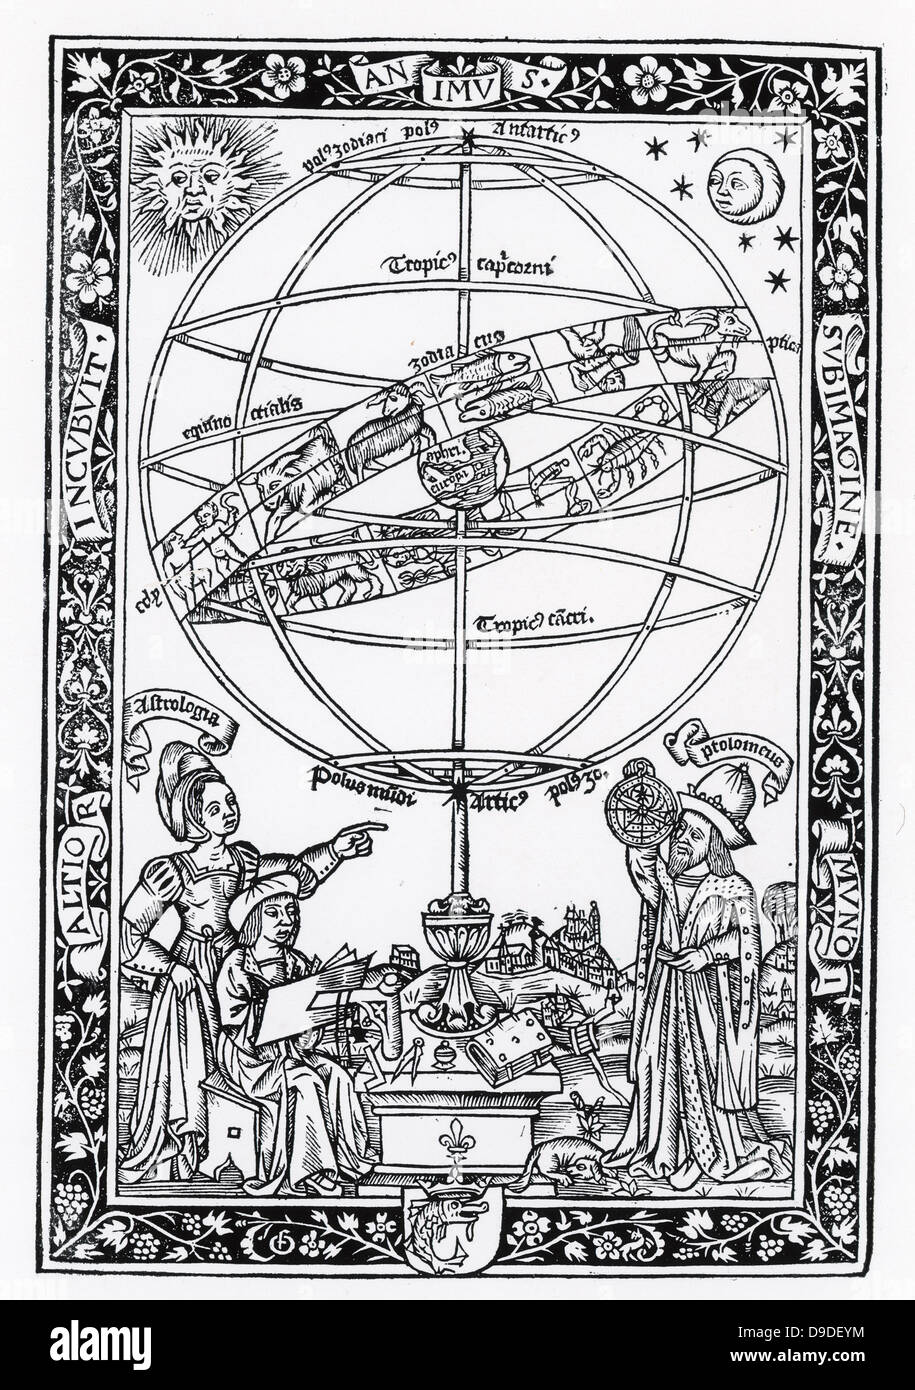 Urania, Muse of Astronomy, left, and Ptolemy using astrolabe, left. Woodcut 1521. - Stock Image